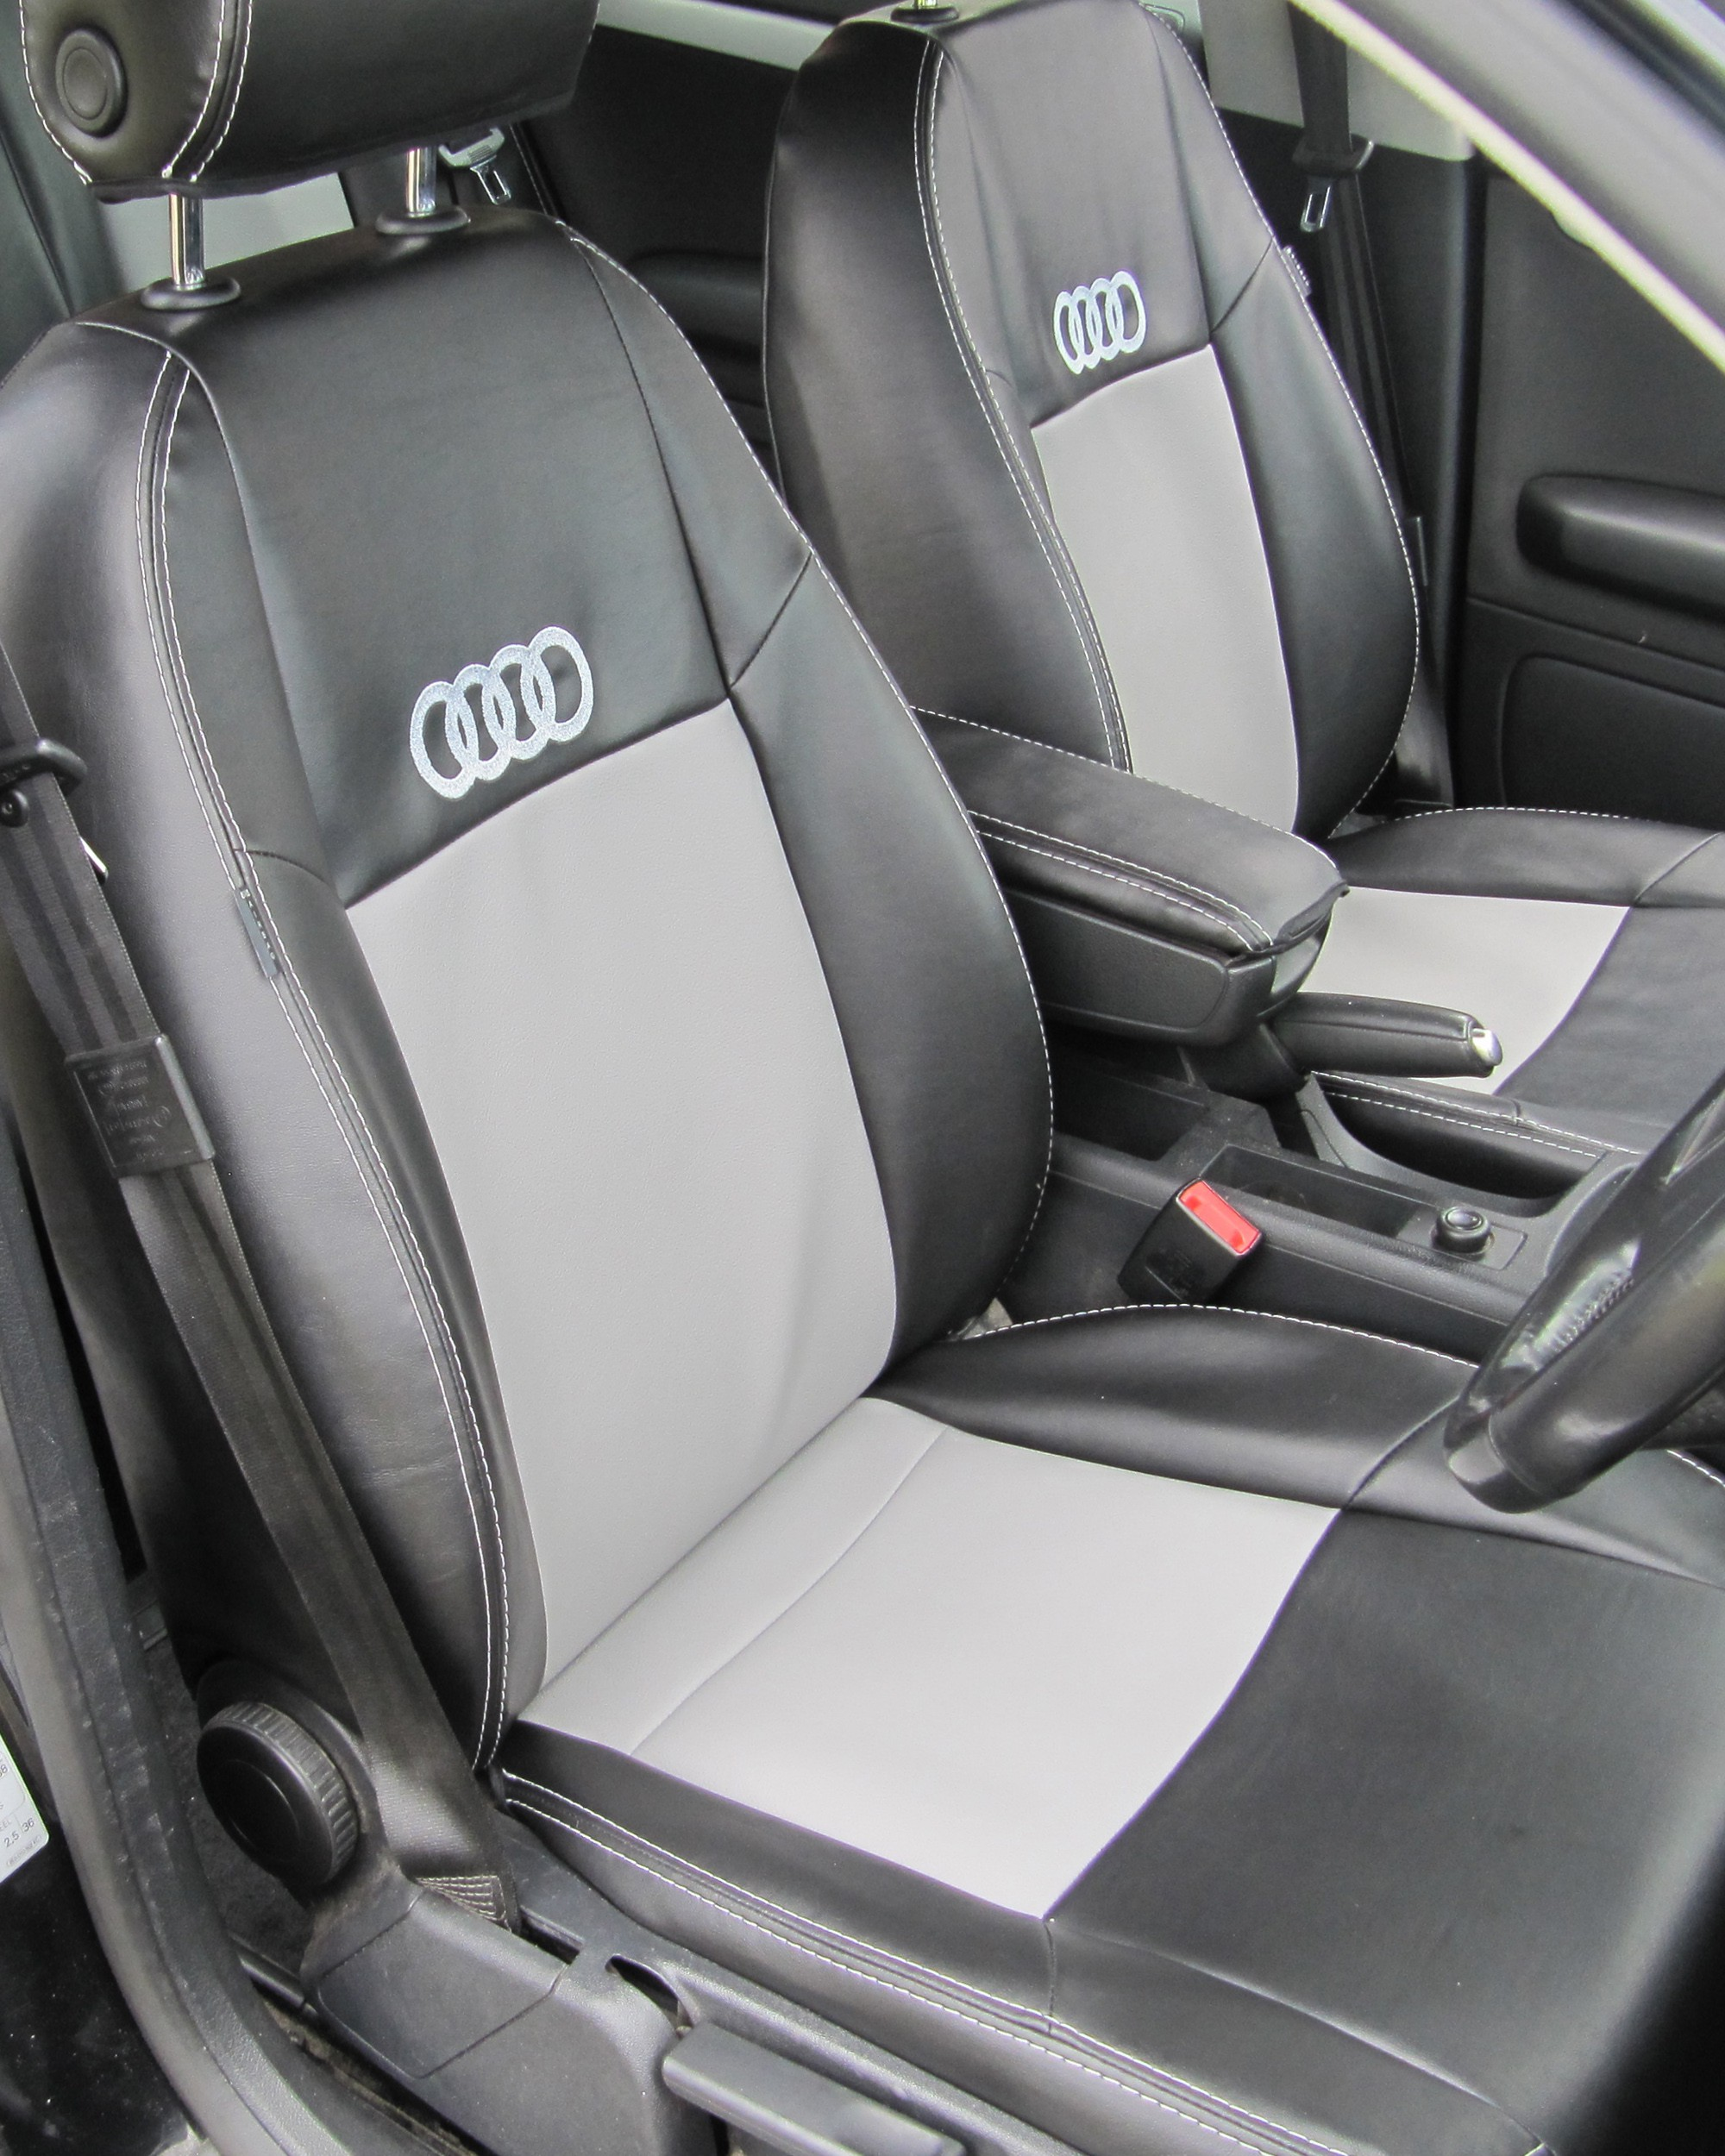 Audi A4 B8 Black & Grey With Logos